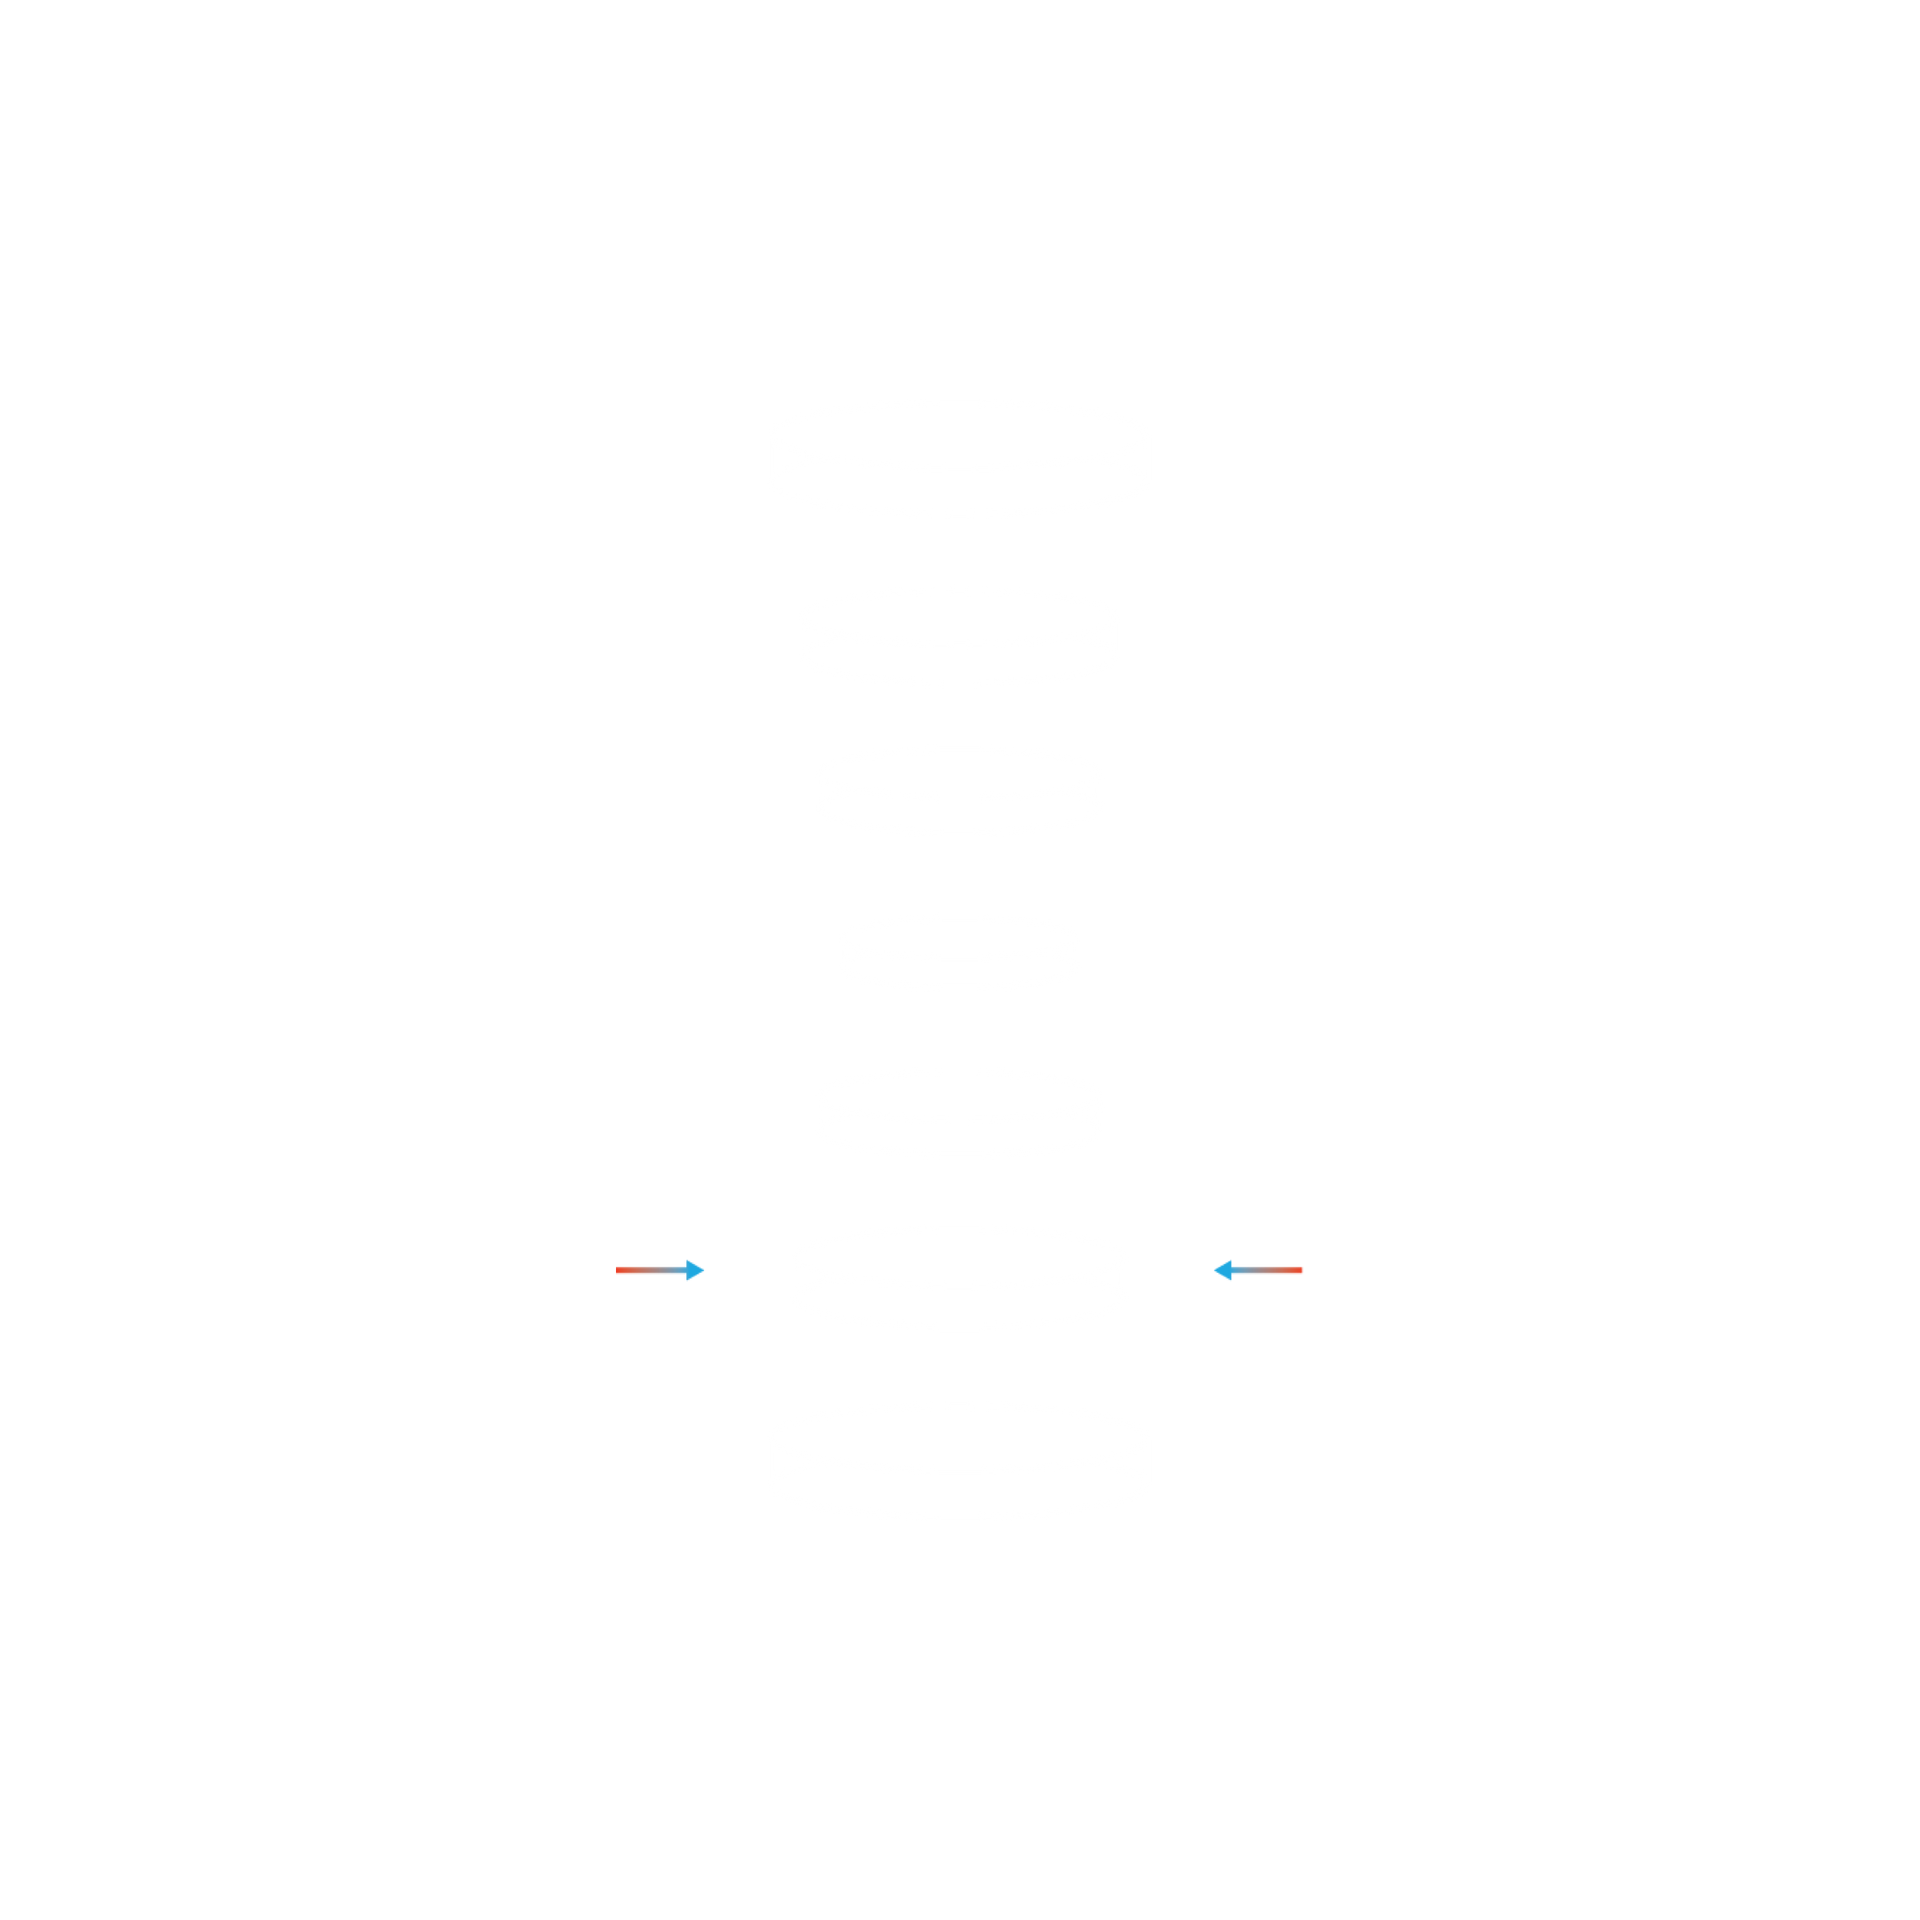 Cylindrical illustration showing spinal support on a black background.